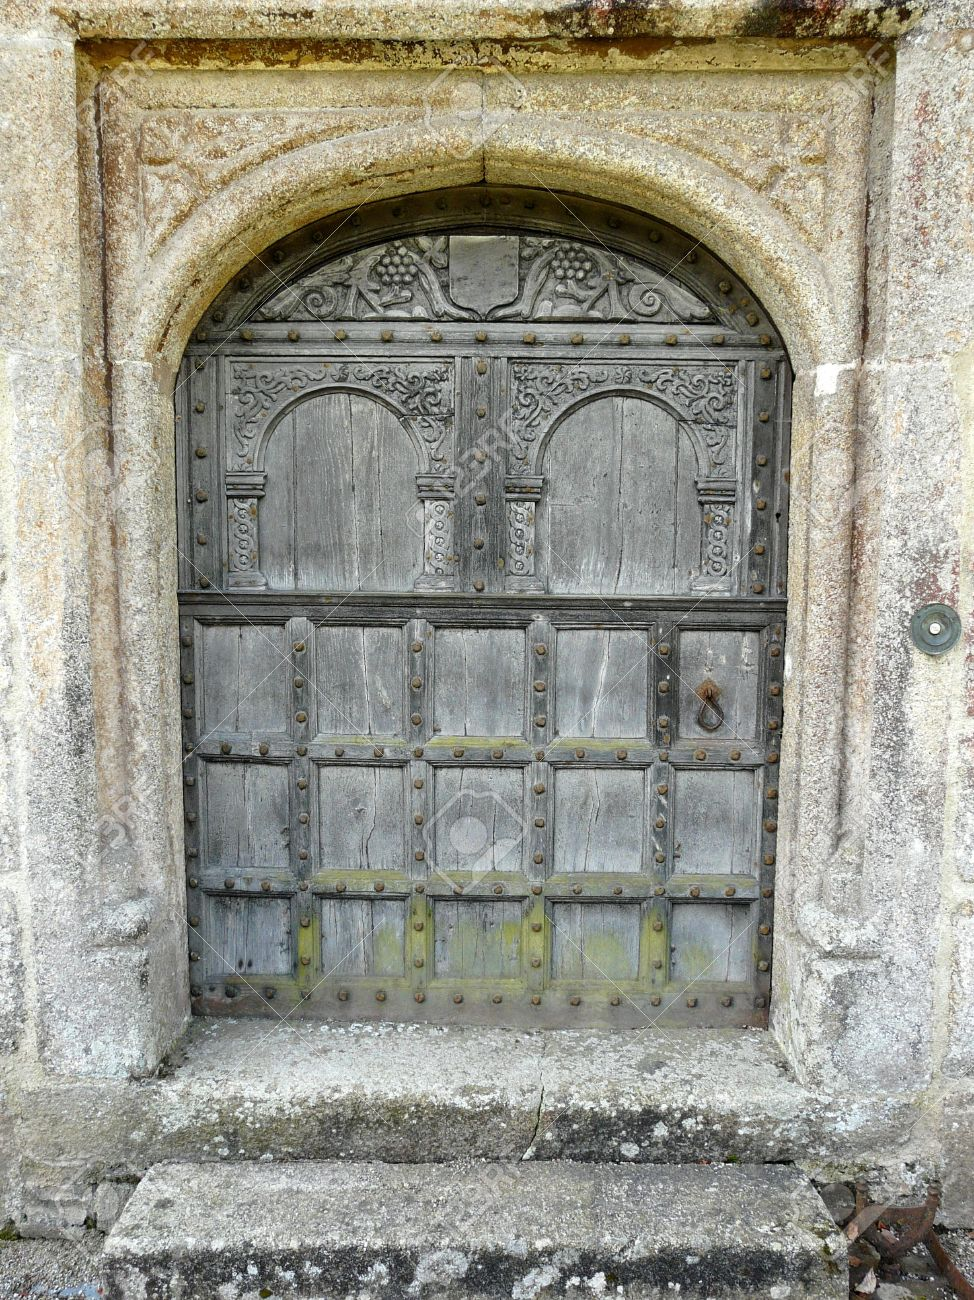 Old Wooden Arched Door At Lanhydrock Castle Near Bodmin In & Collection Wooden Windows And Doors Cornwall Pictures - Woonv.com ... pezcame.com